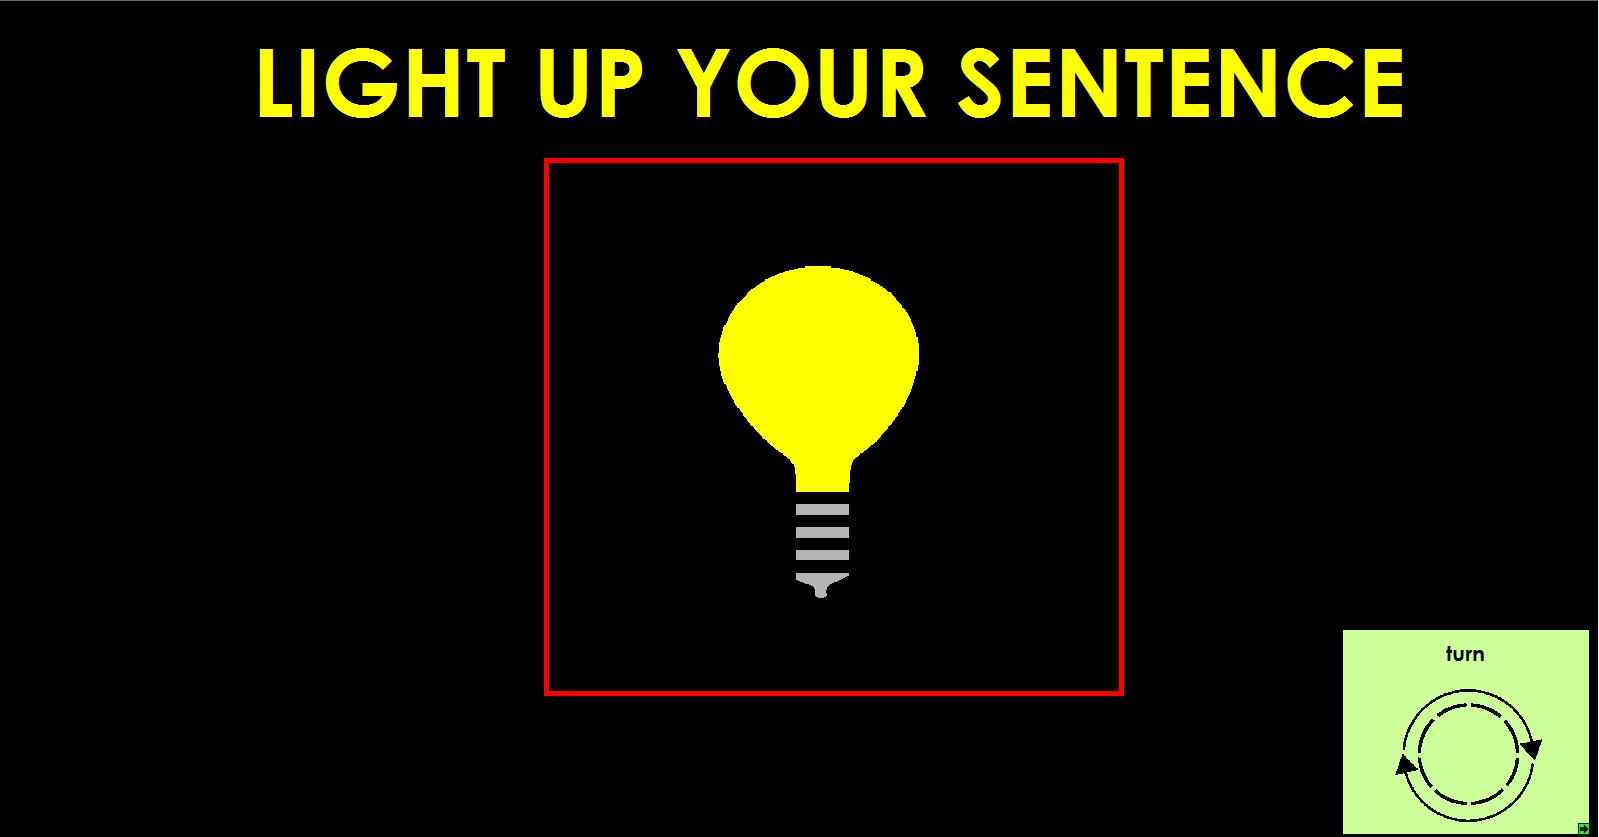 Light Up Your Sentence 2